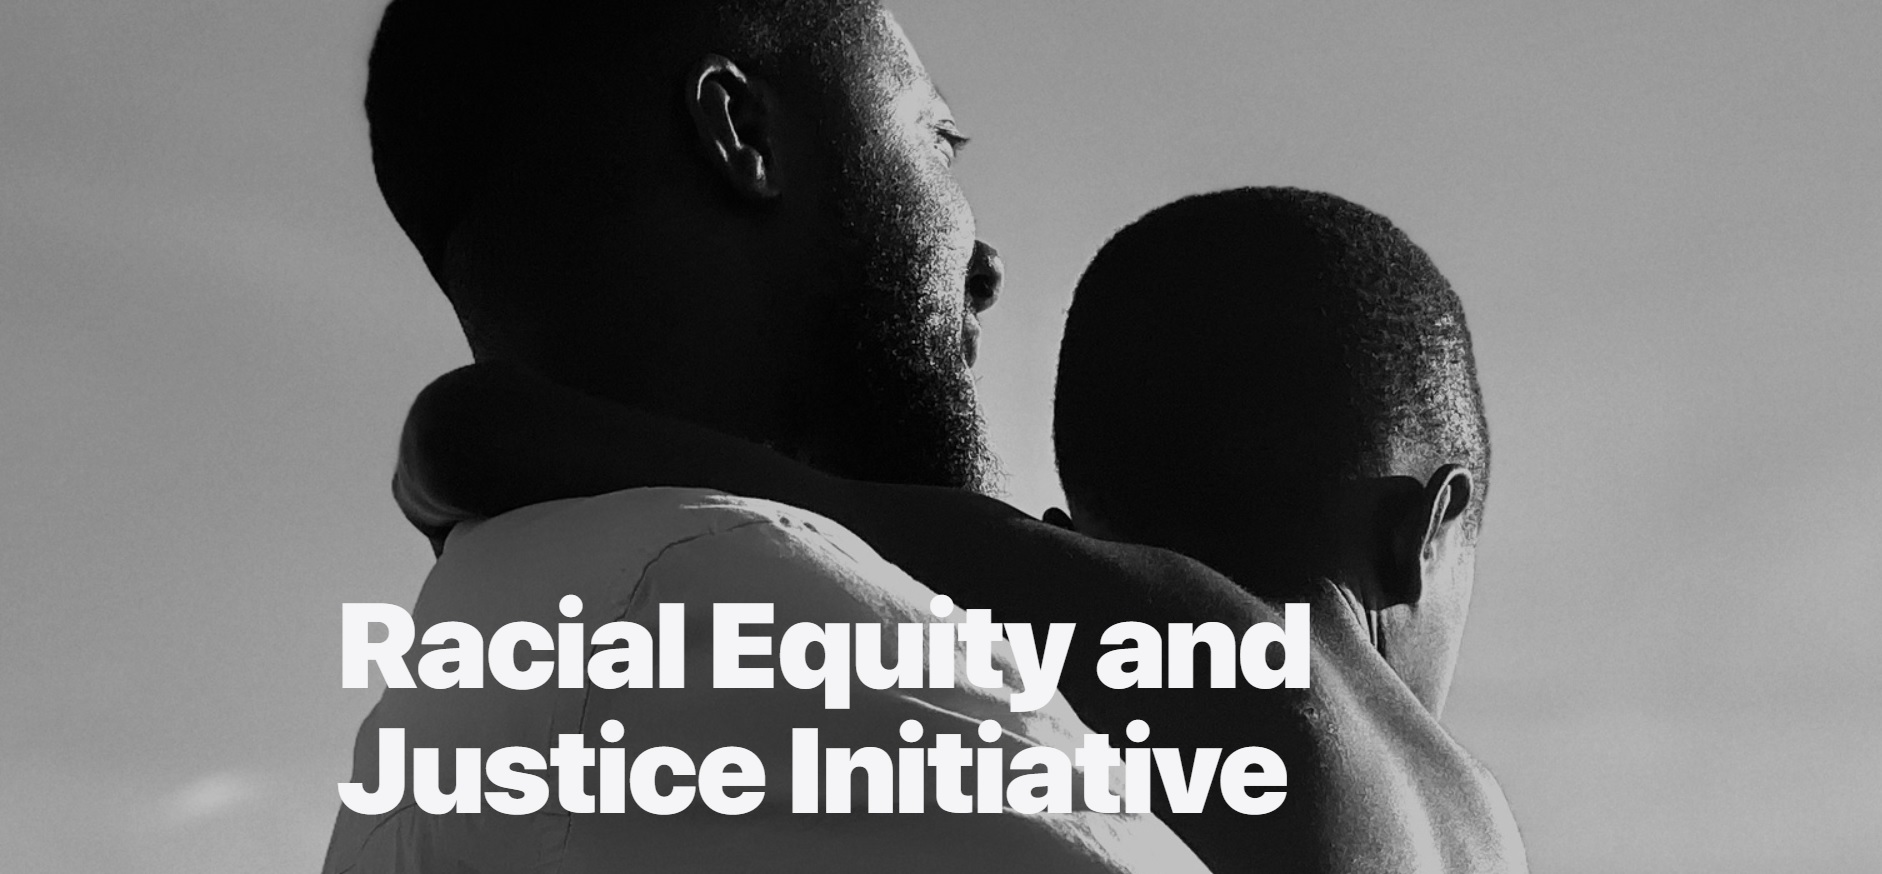 Apple, Racial Equity and Justice Initiative, REJI